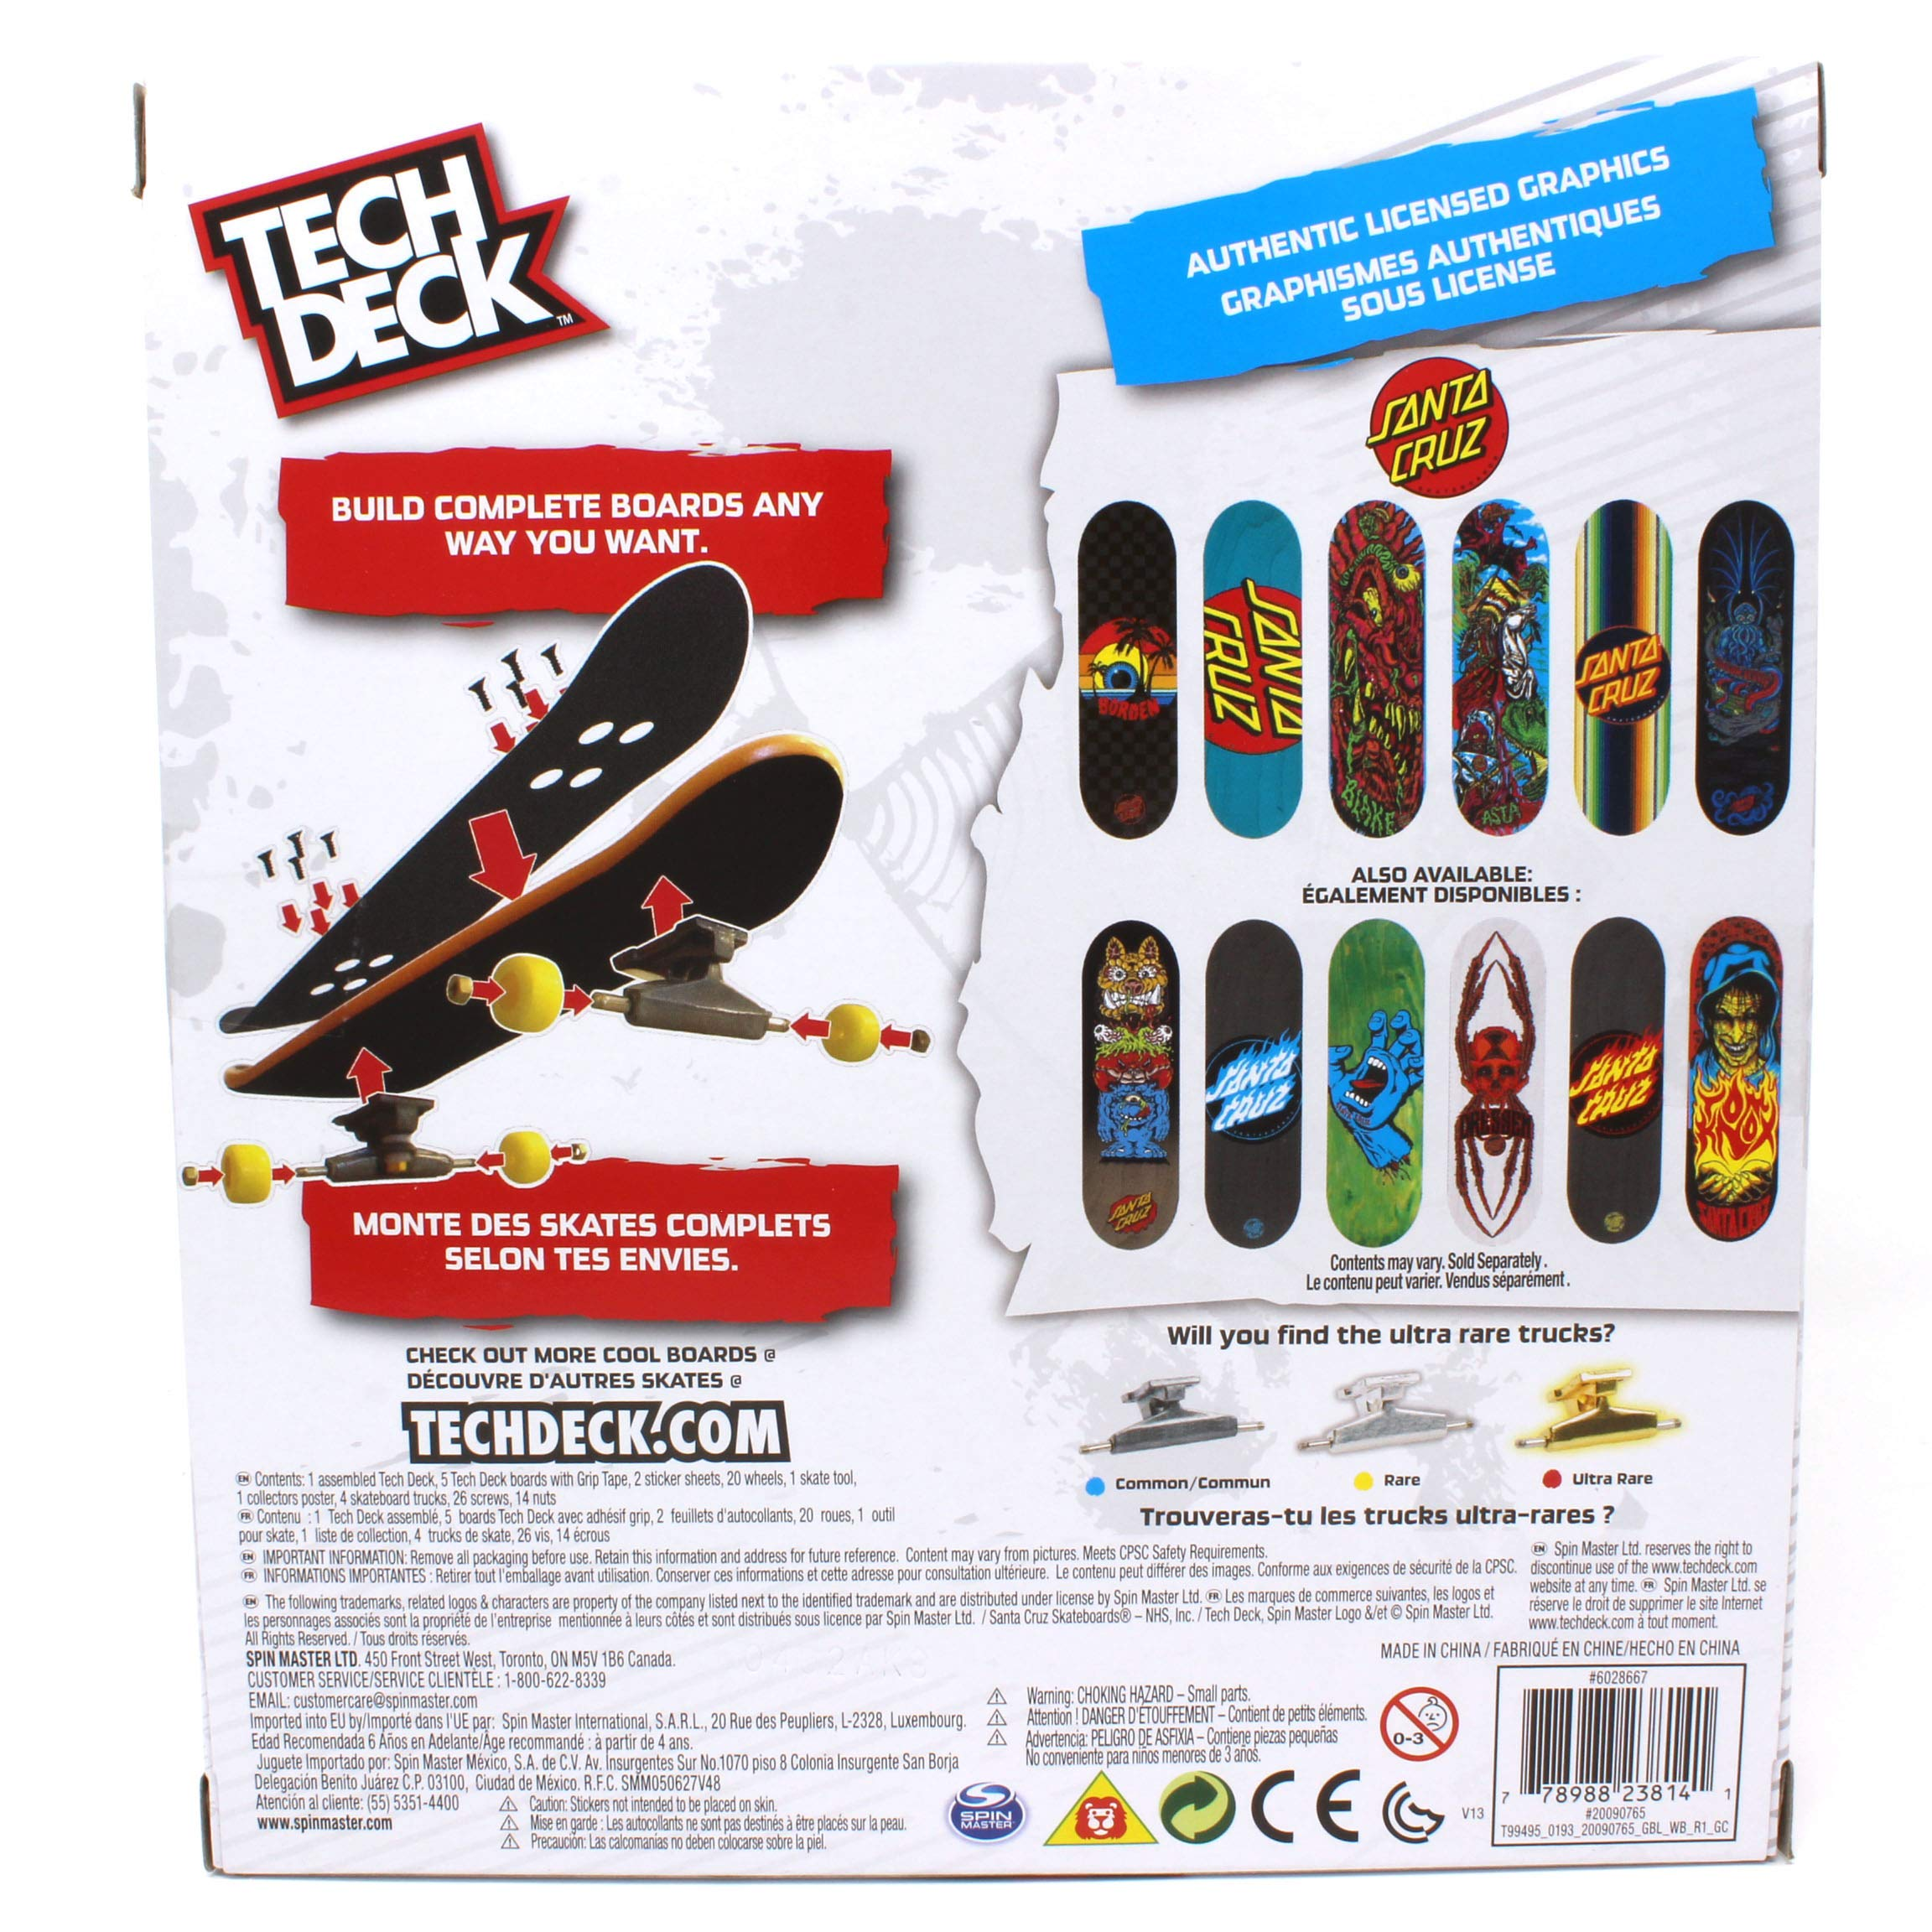 Tech Deck Santa Cruz Skateboarding Sk8shop Bonus Pack with 6 Fingerboards - 20th Anniversary by Tech Deck (Image #1)